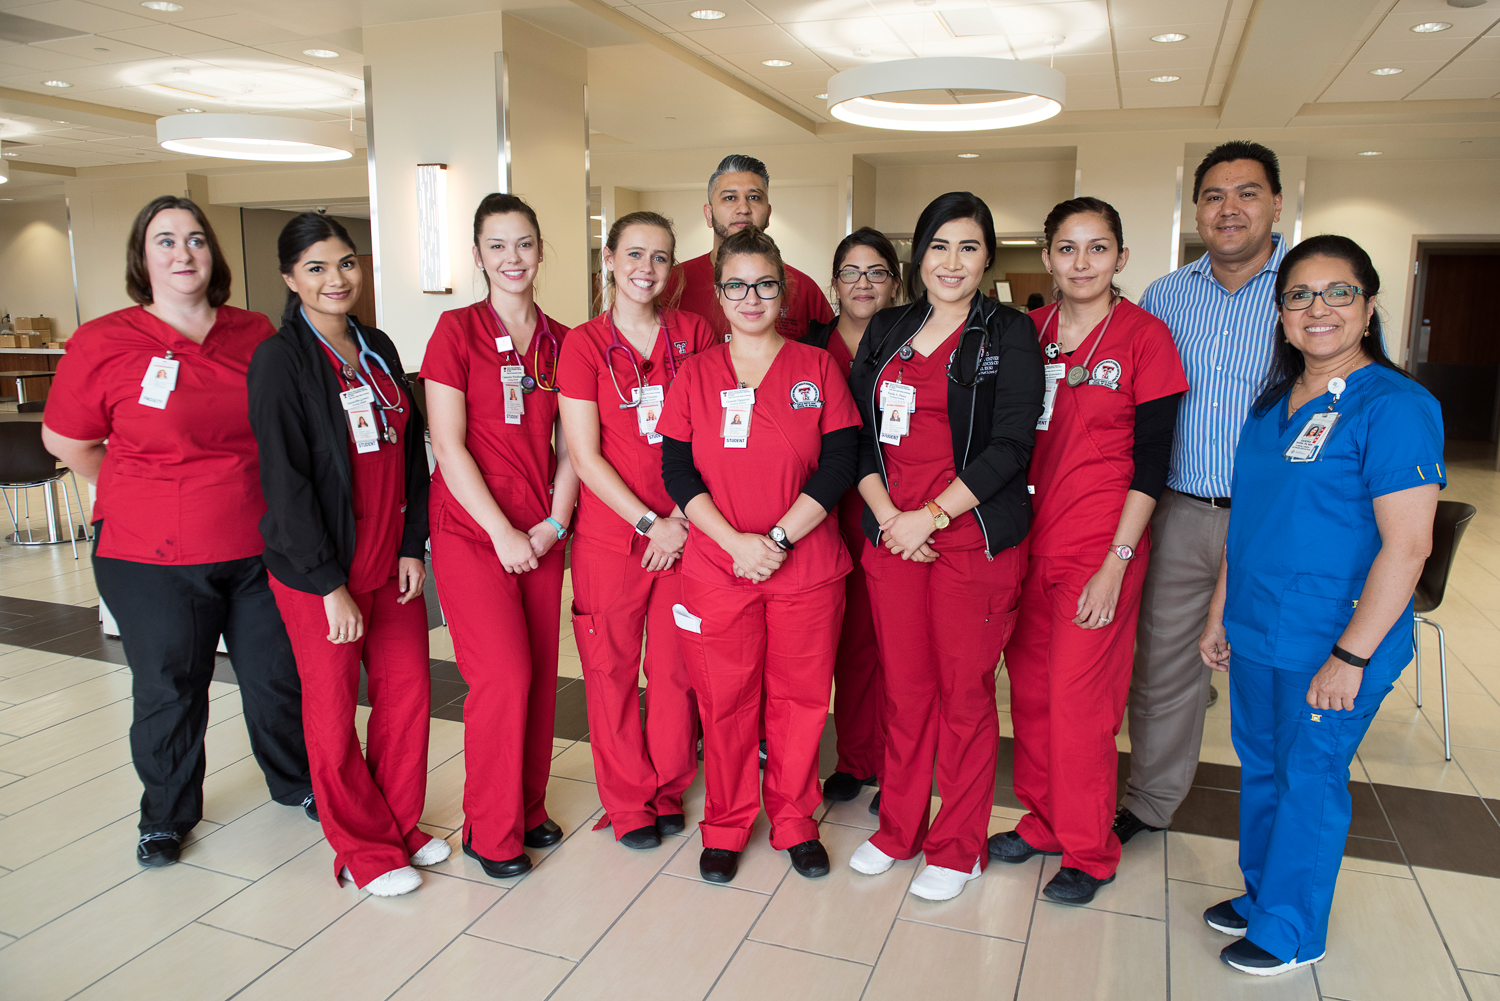 Nurses Begin Rotations at Transmountain Campus